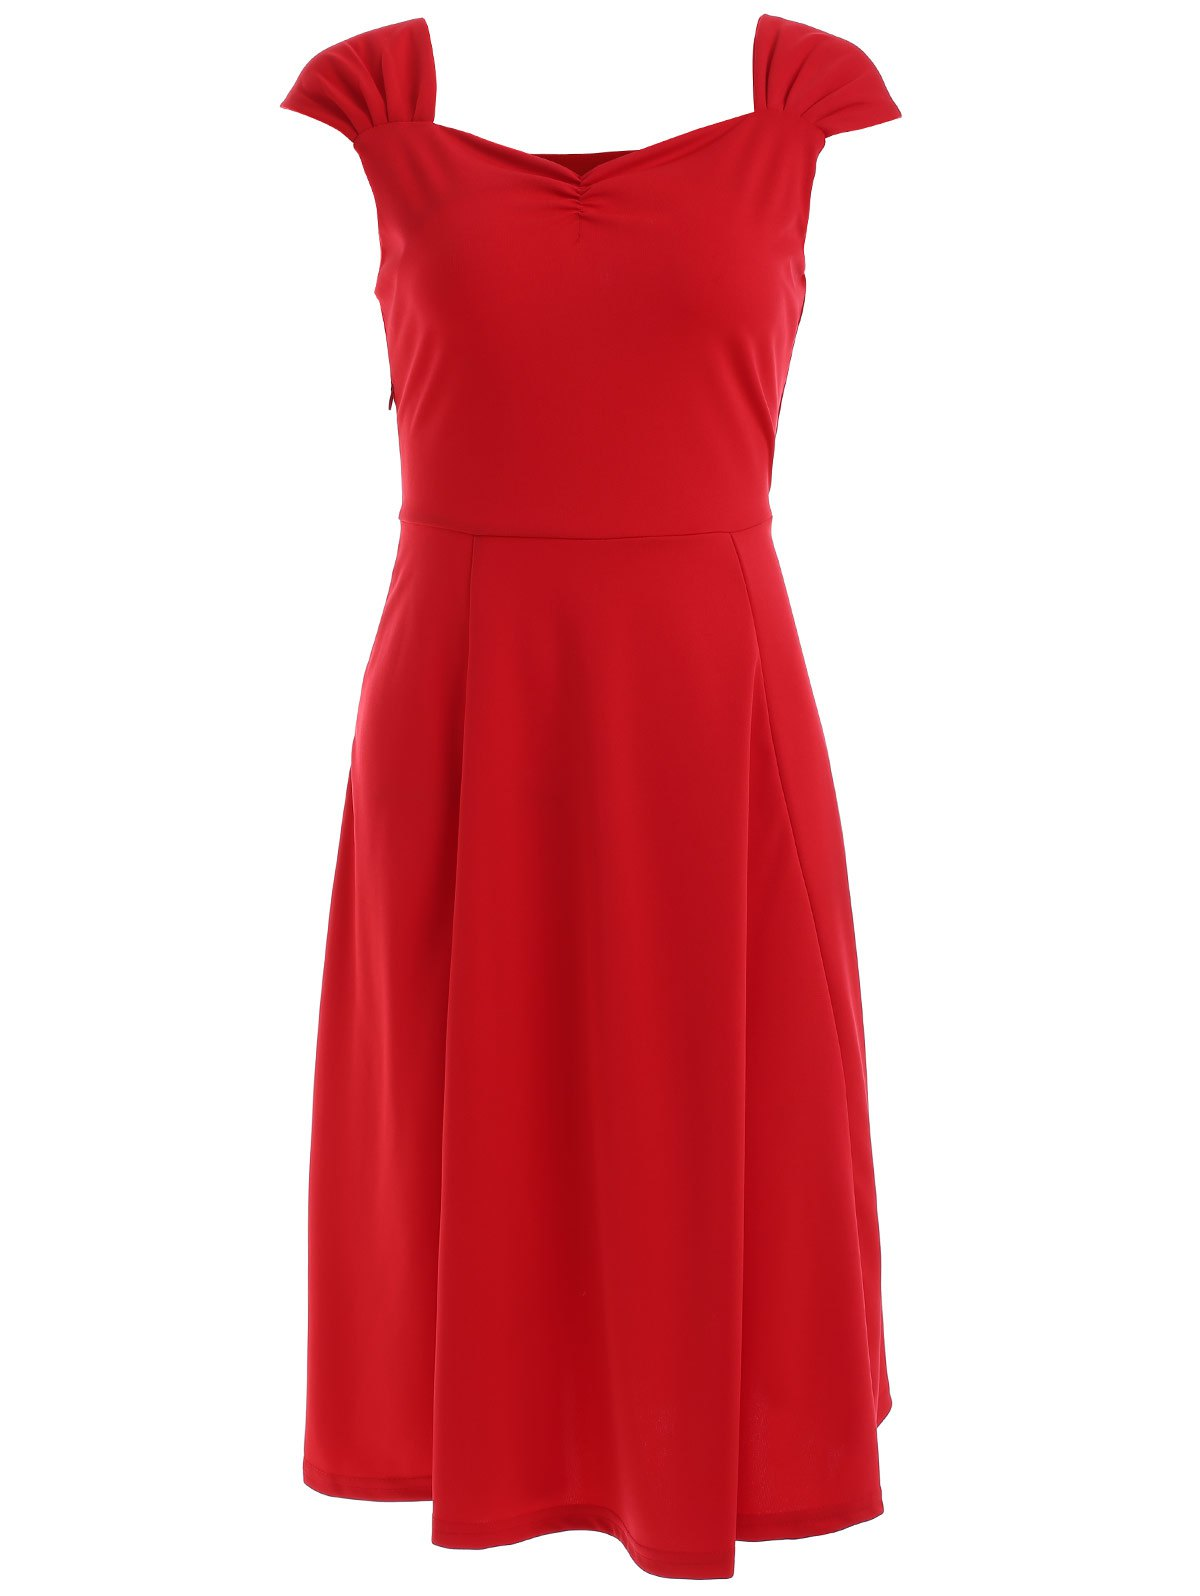 Vintage Sleeveless Solid Color Sweetheart Neck Dress For Women - RED M